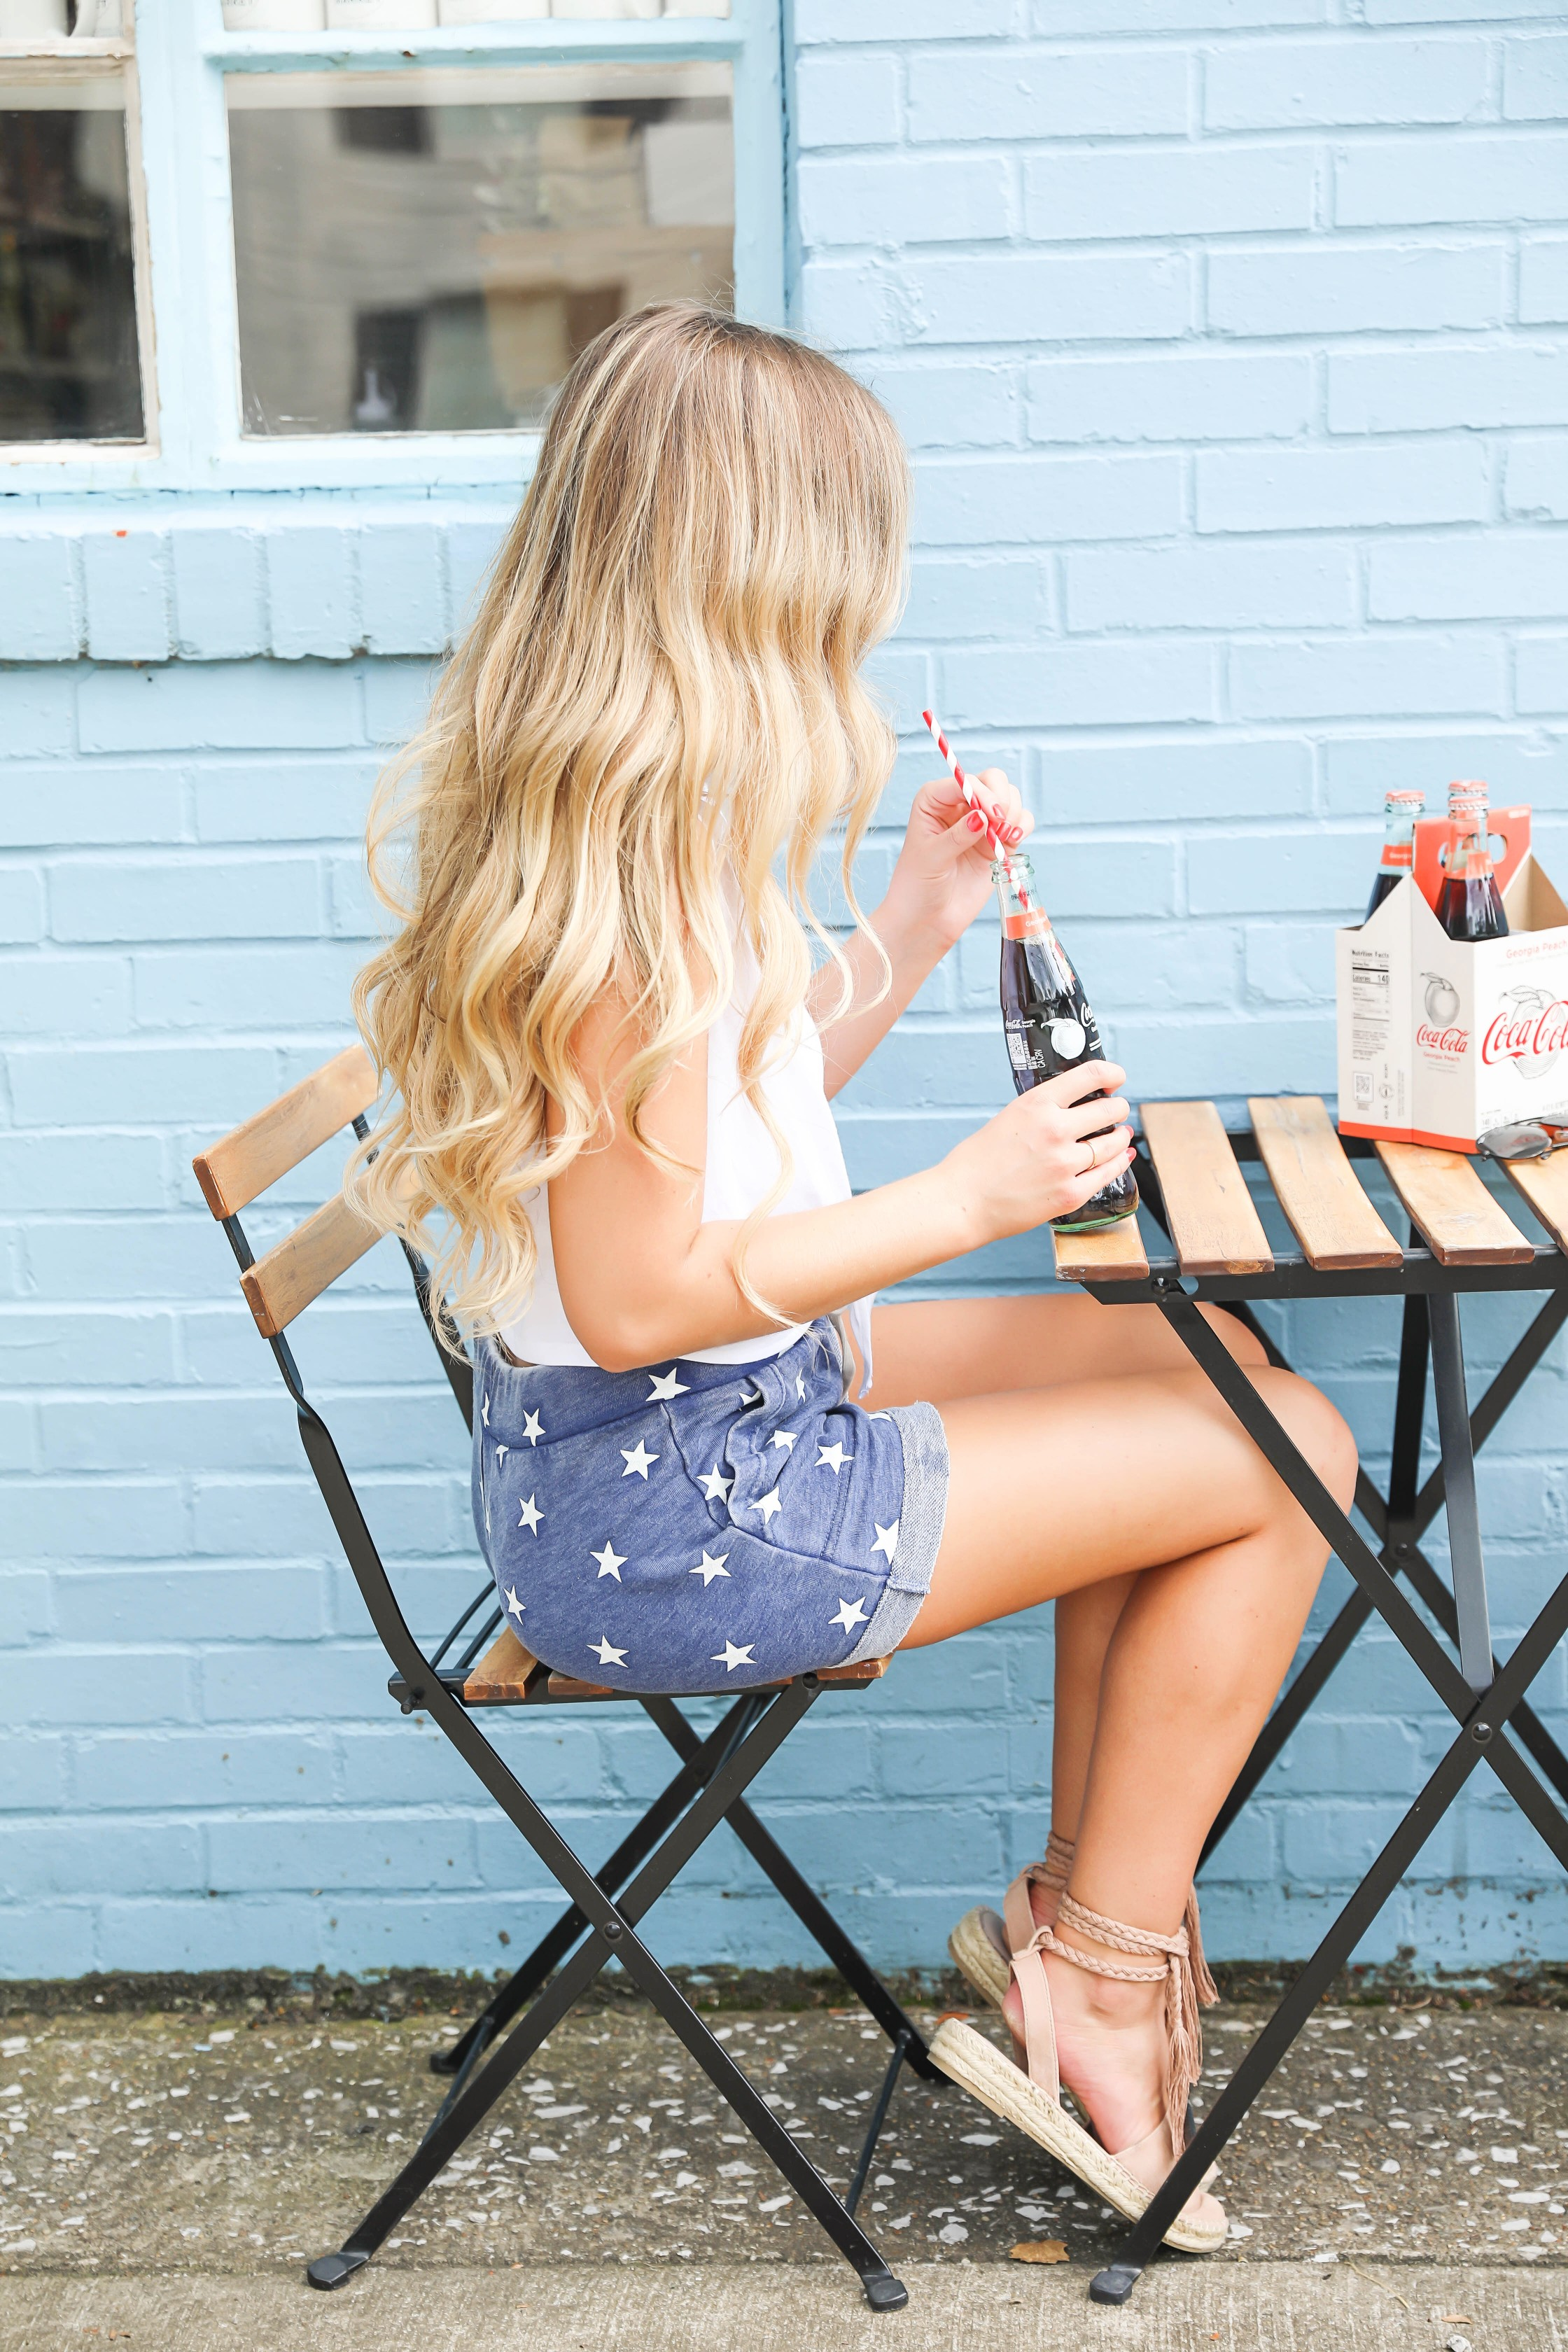 Fourth of july outfit inspo! I love these comfy blue star shorts! I paired it with this cute tied top! Such a fun coke bottle photoshoot! Red, white, and blue outfit details on fashion blogger daily dose of charm by lauren lindmark